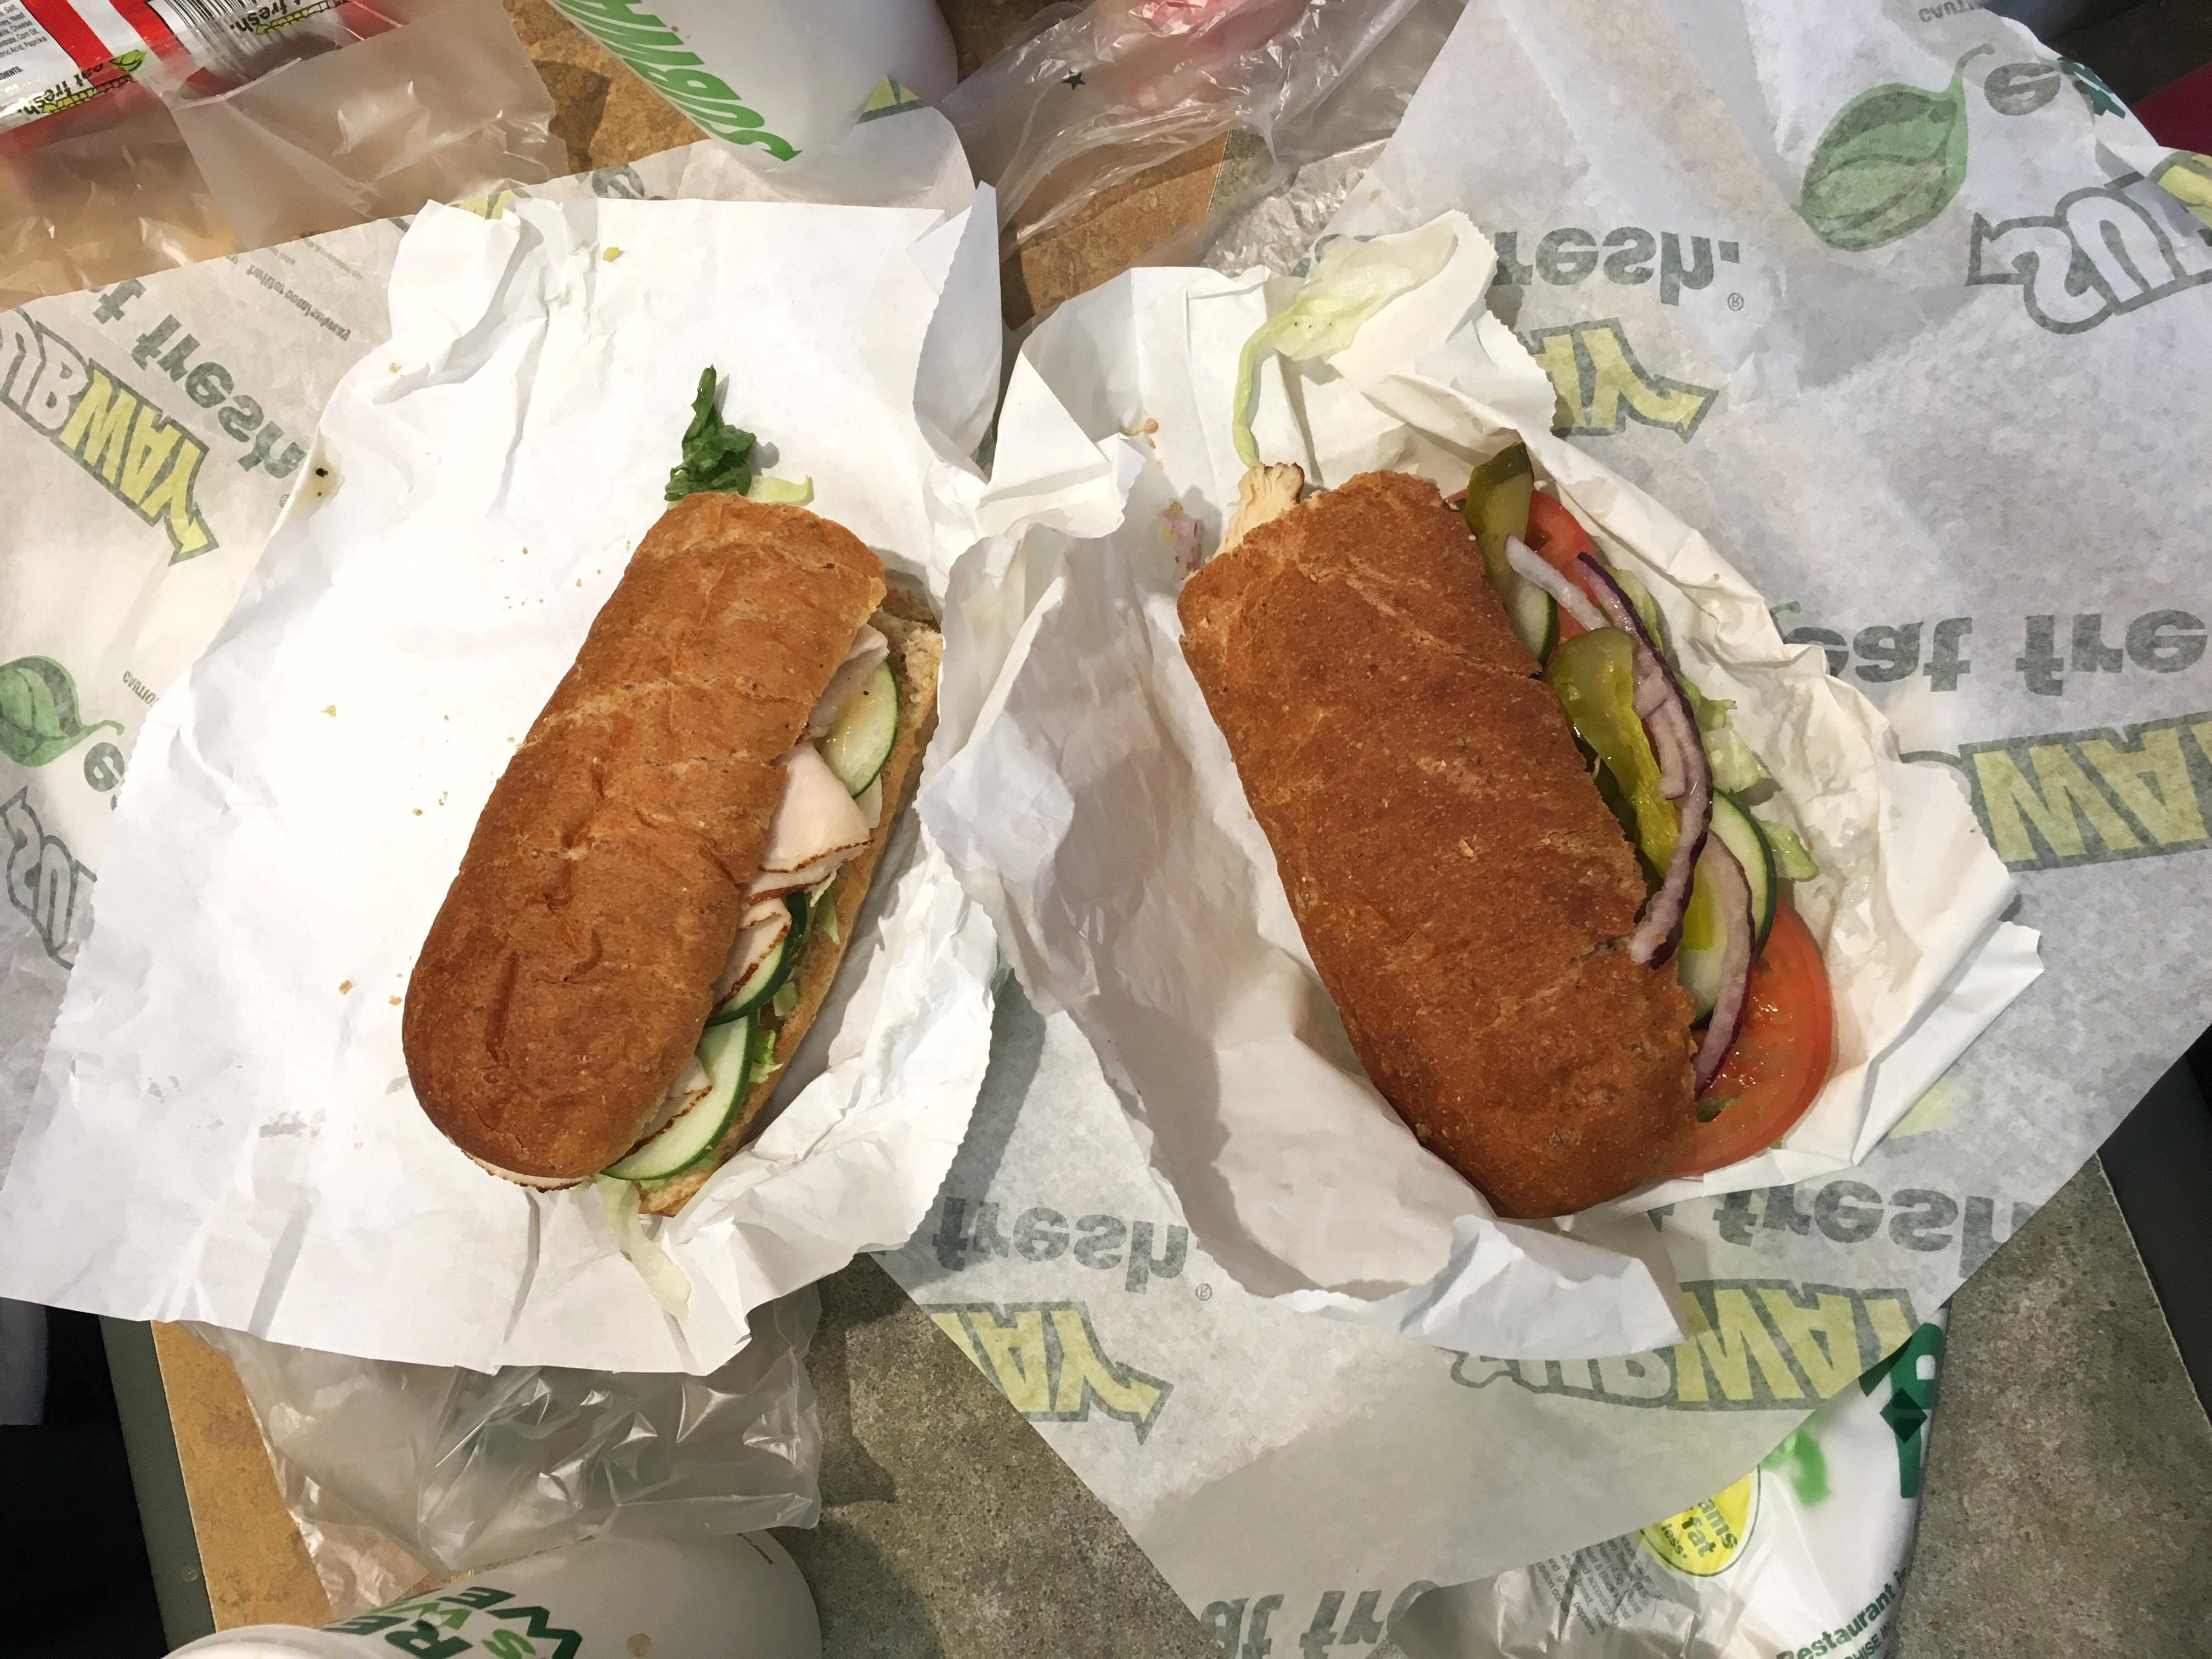 I went on the Subway diet for a week — here are 5 tips for ordering the best sandwich